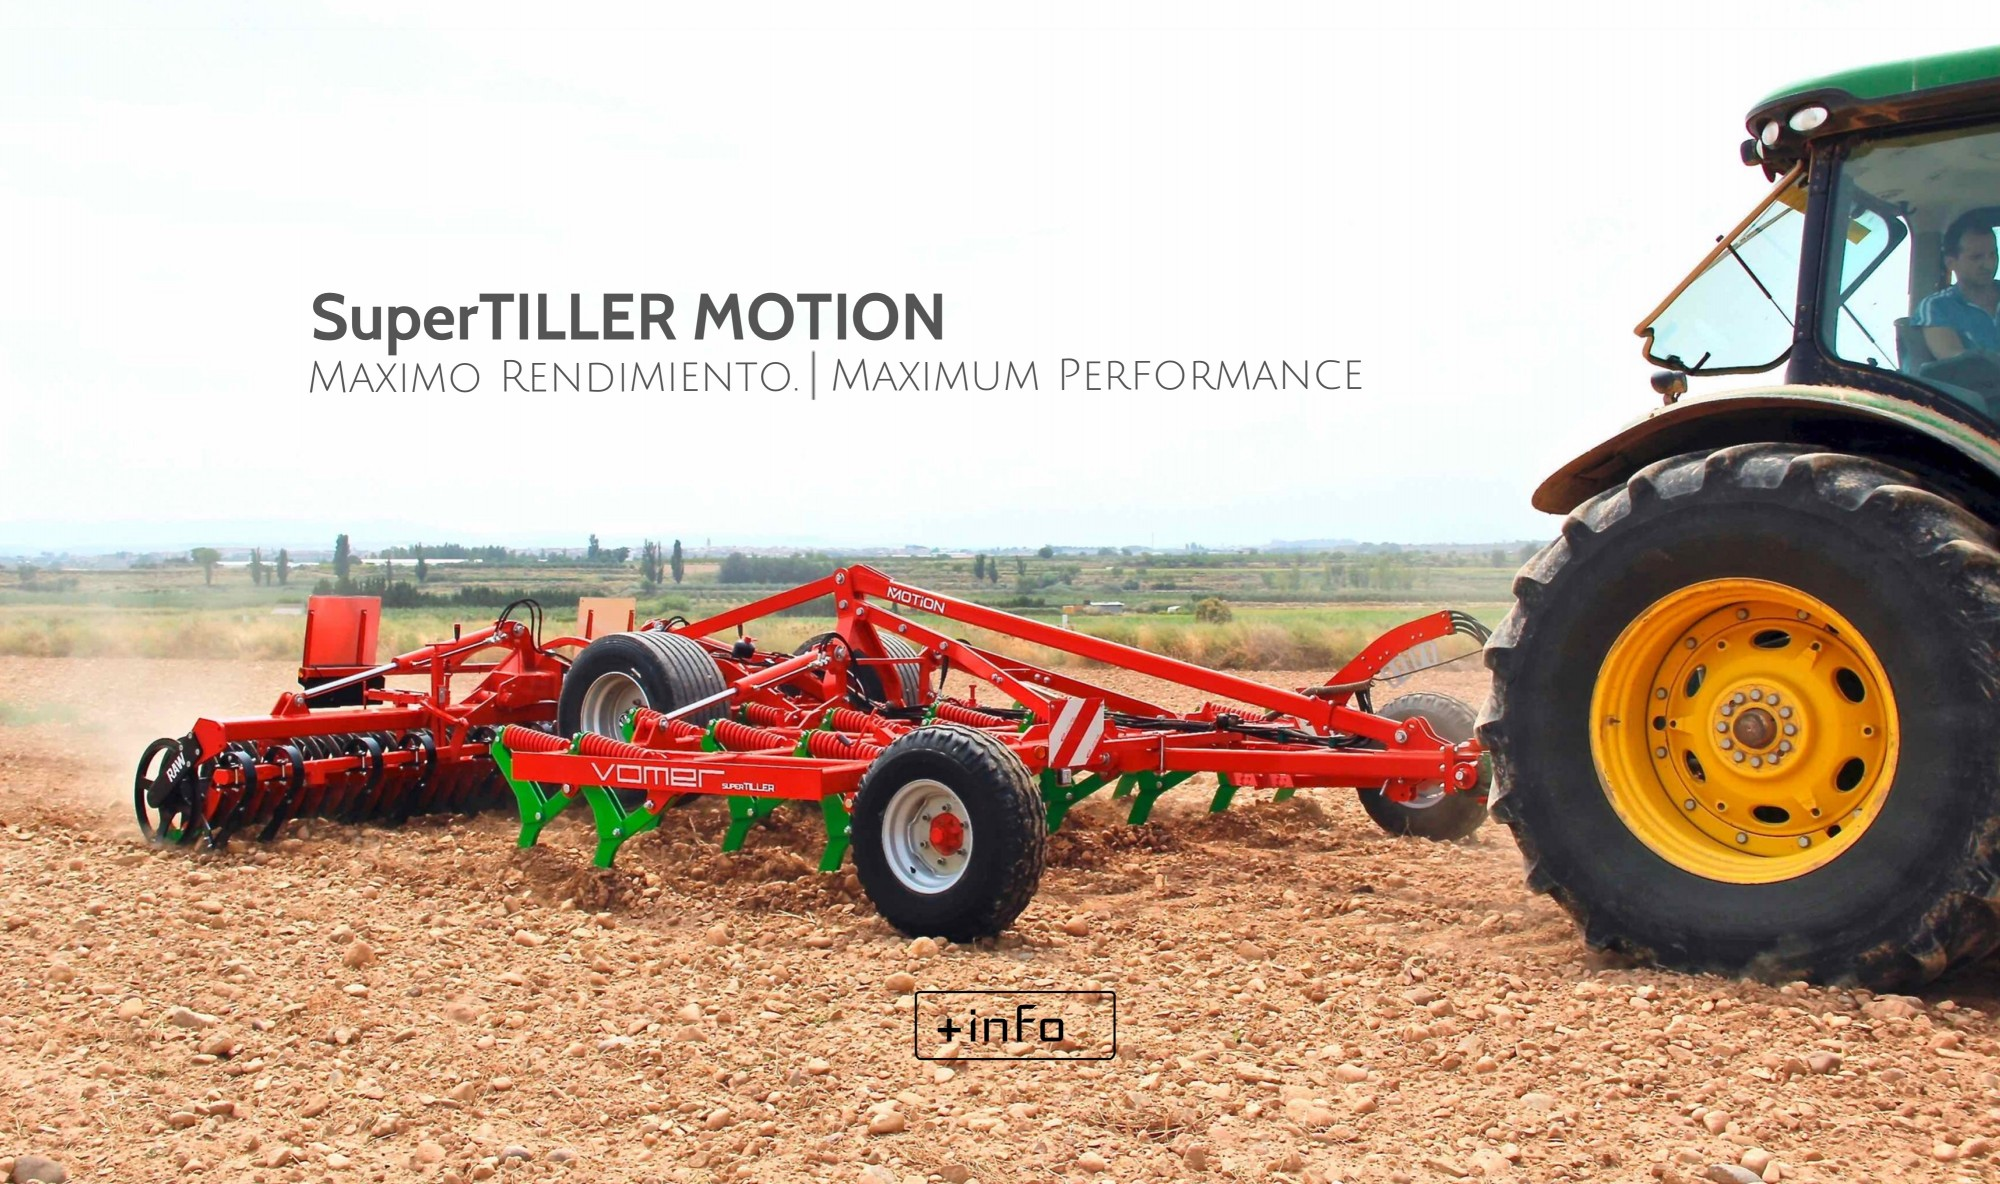 SuperTILLER MOTION